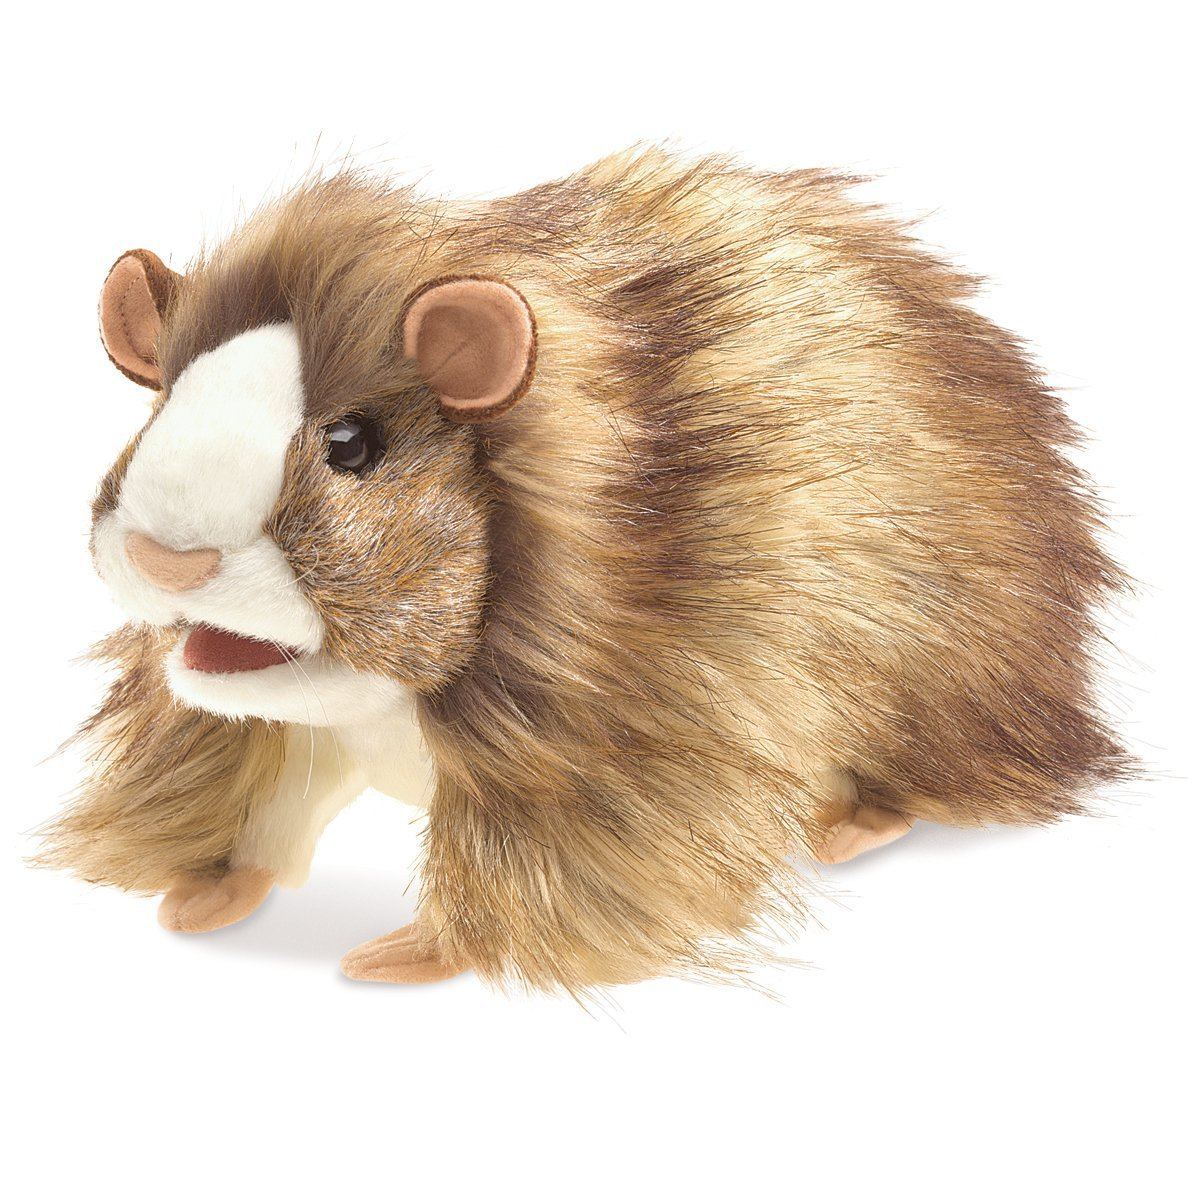 Folkmanis Hand Puppet - Guinea Pig image